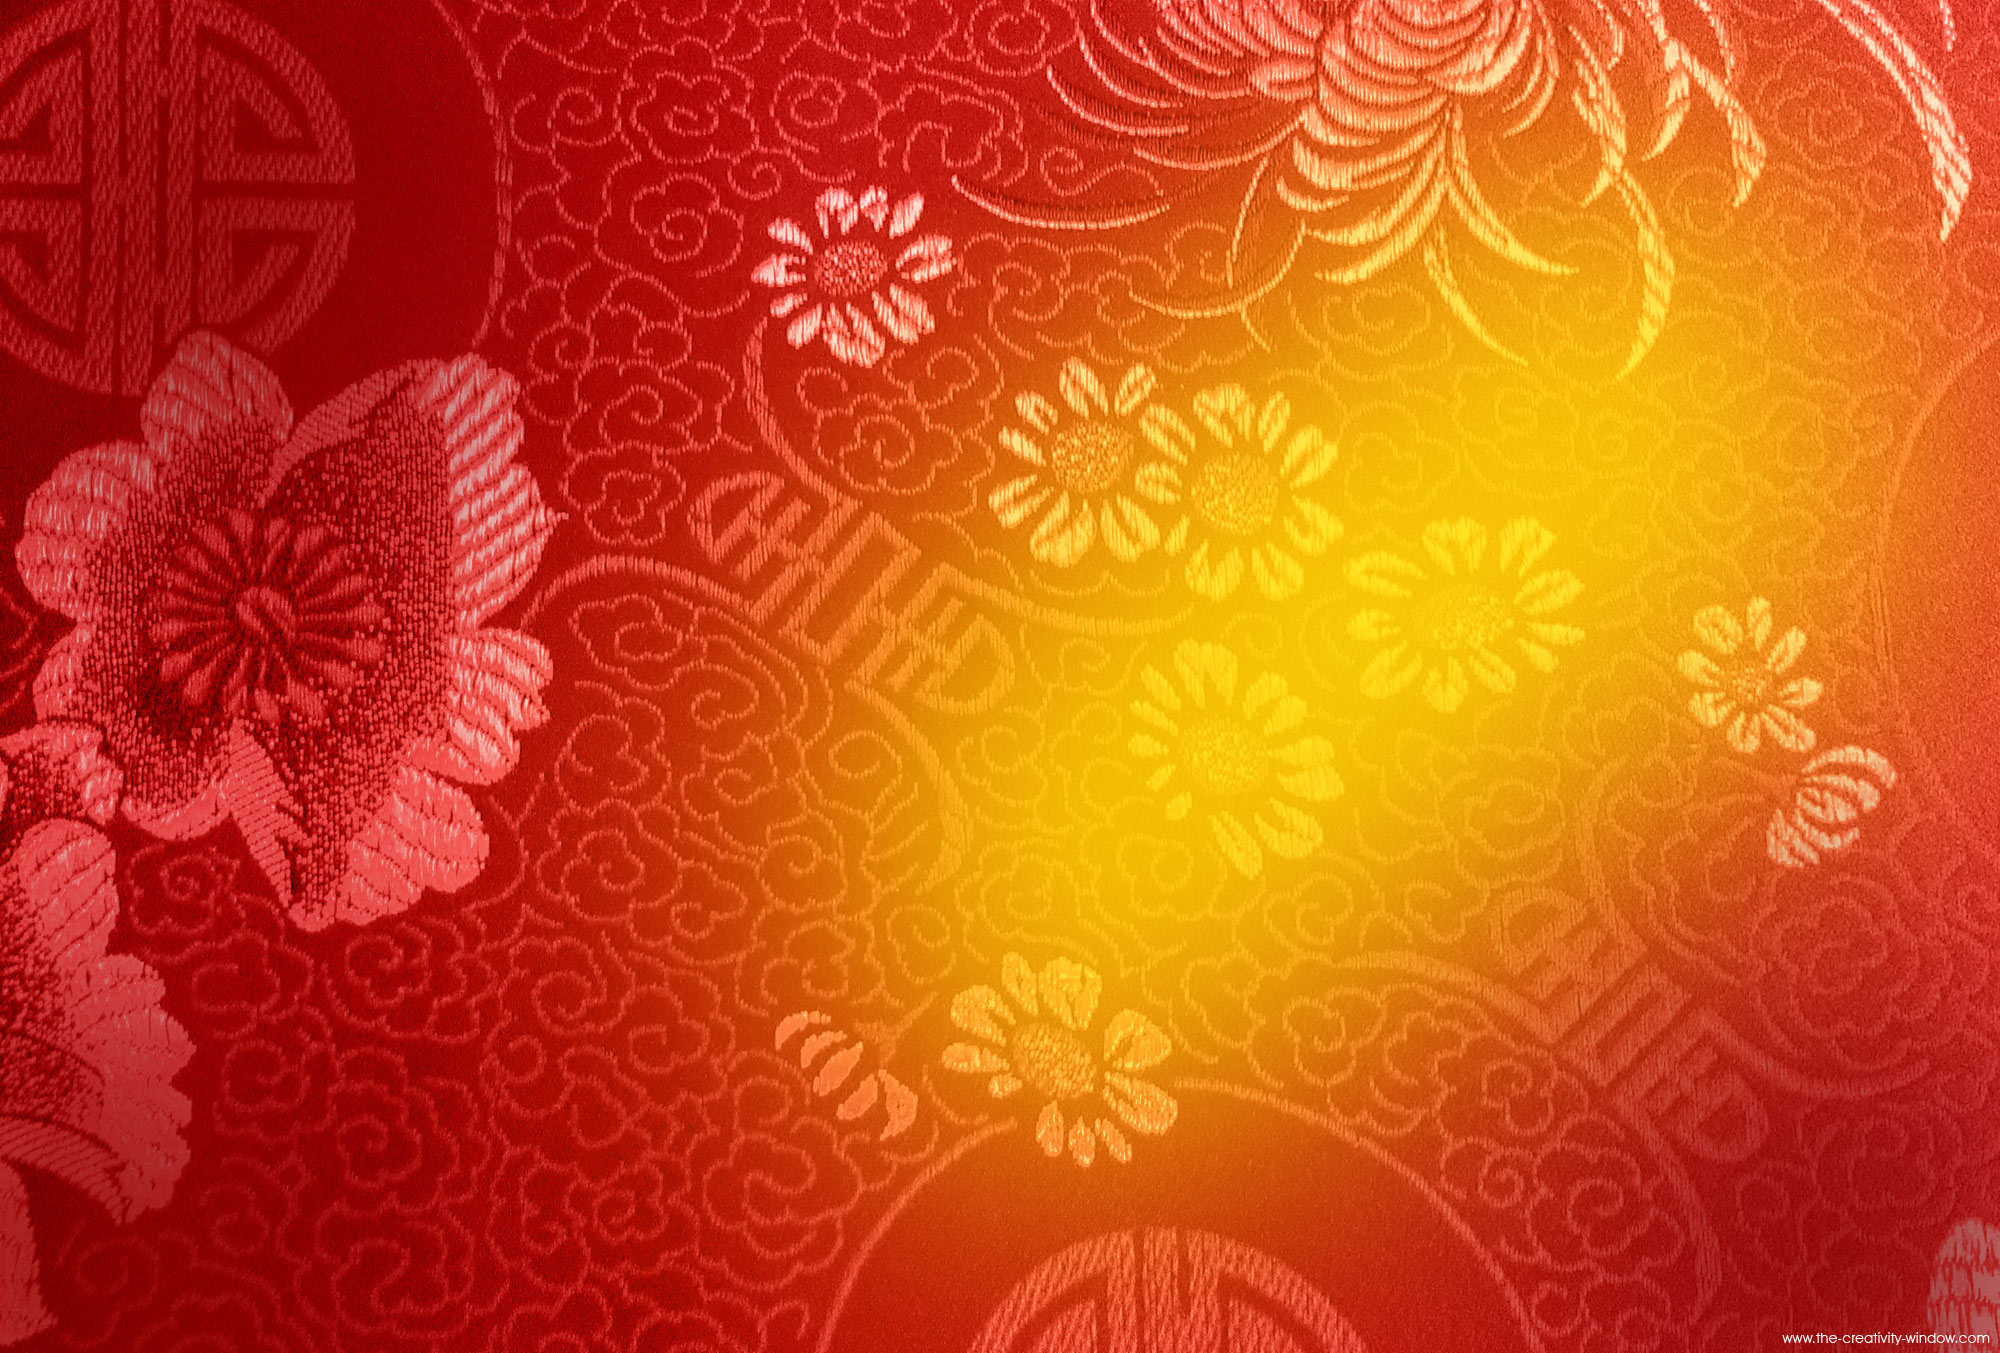 HD Wallpaper Background for Chinese New Year Card   HD Wallpapers for ...